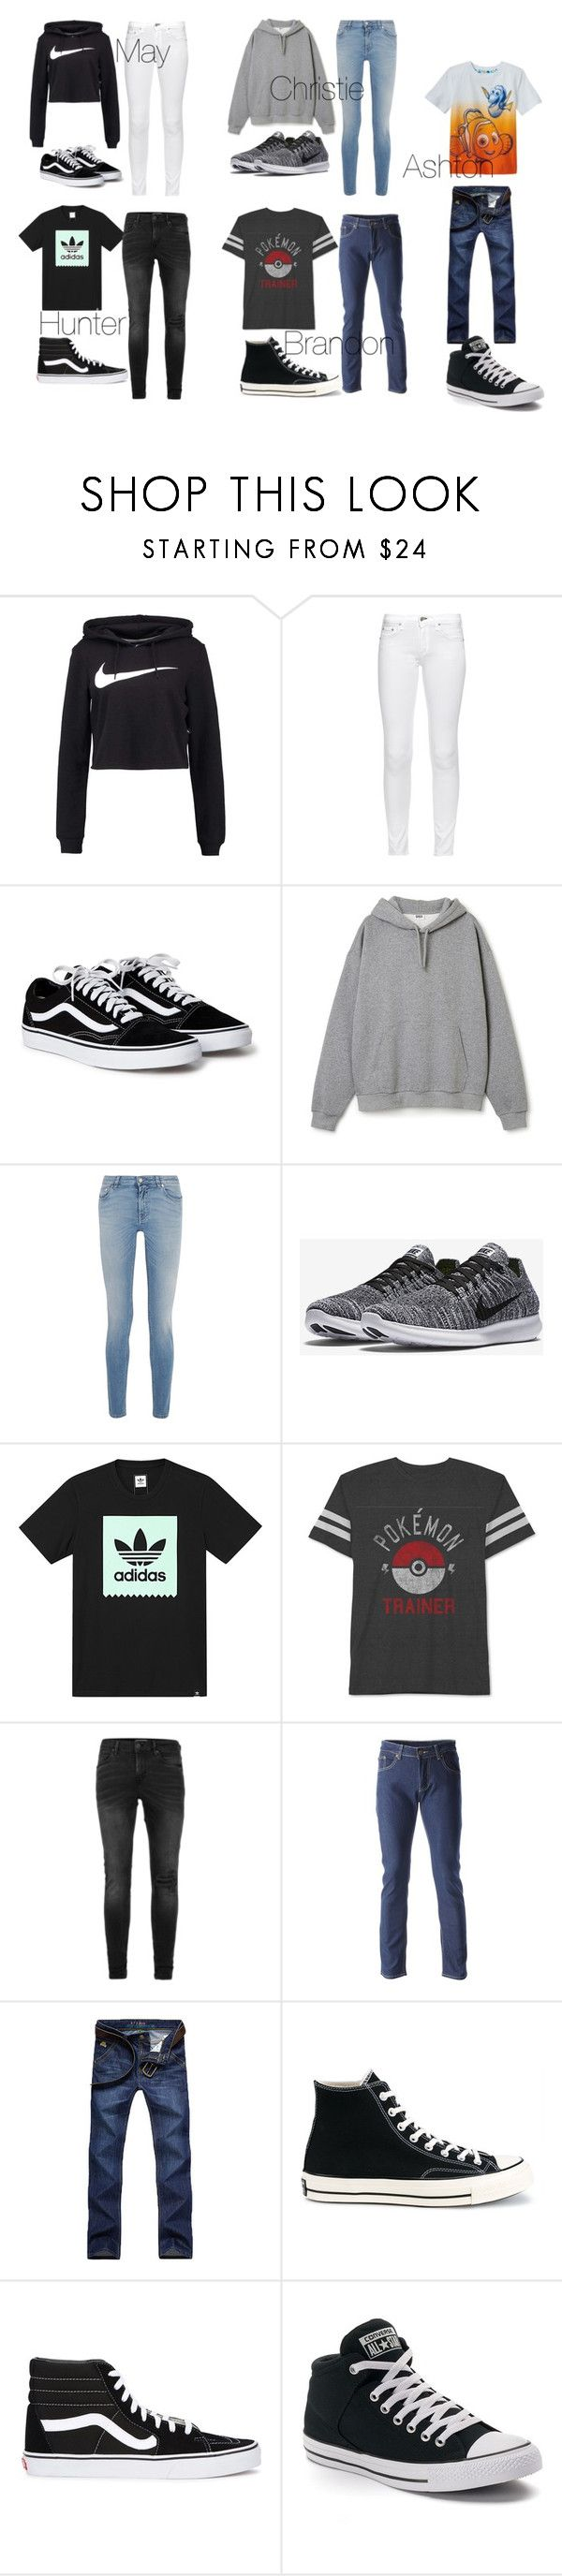 """""""Hello clothes"""" by torilee-03 ❤ liked on Polyvore featuring NIKE, rag & bone, Givenchy, adidas, JEM, Disney, Topman, Converse and Vans"""